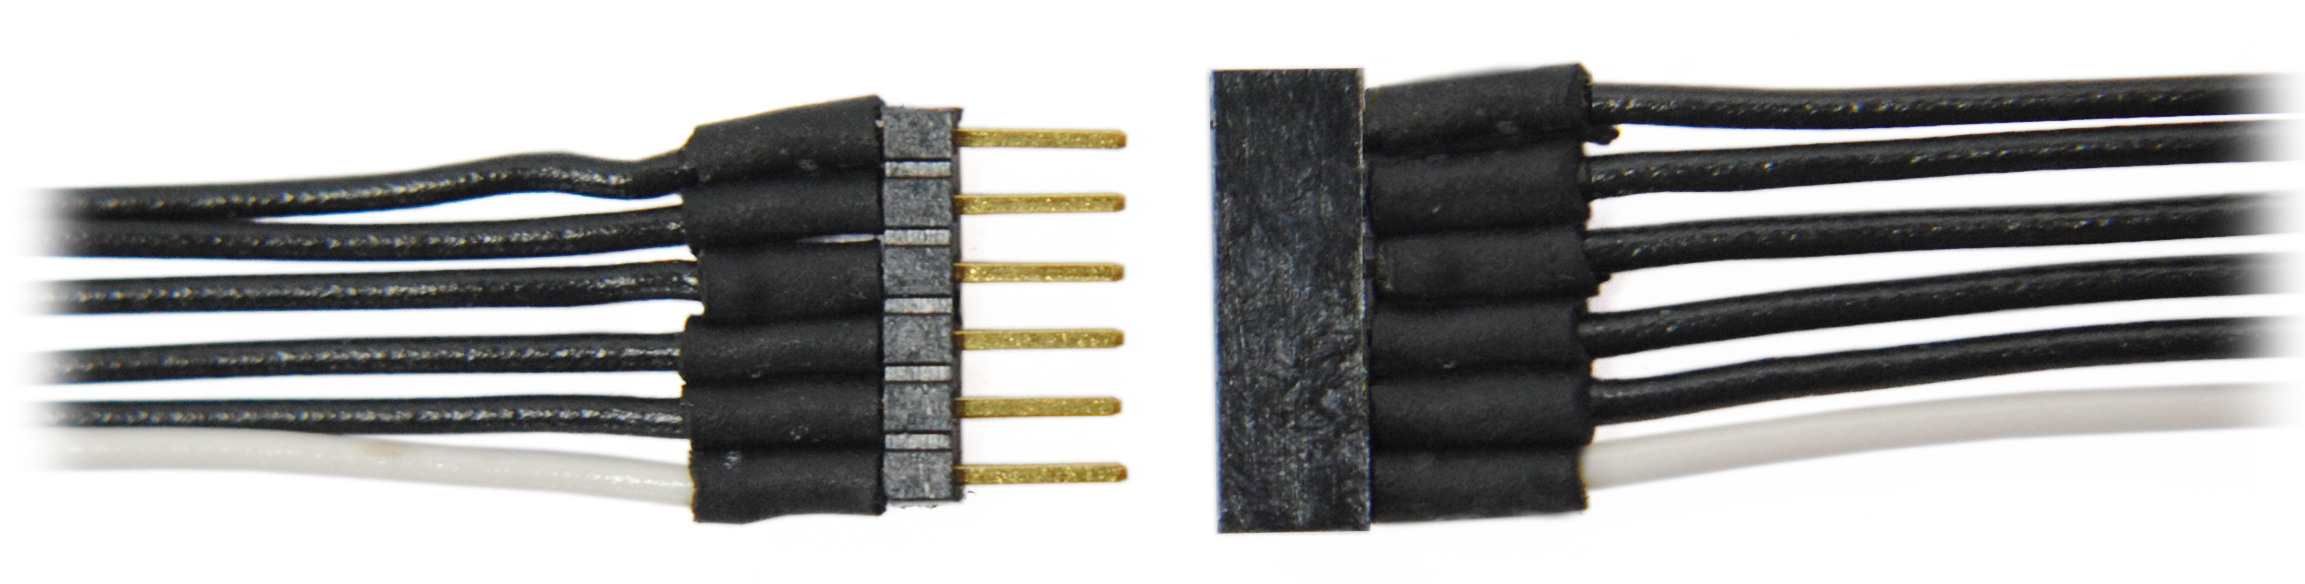 1476 6-Pin Micro Connector 6″ wires – #TCS-1476 – Litchfield Station